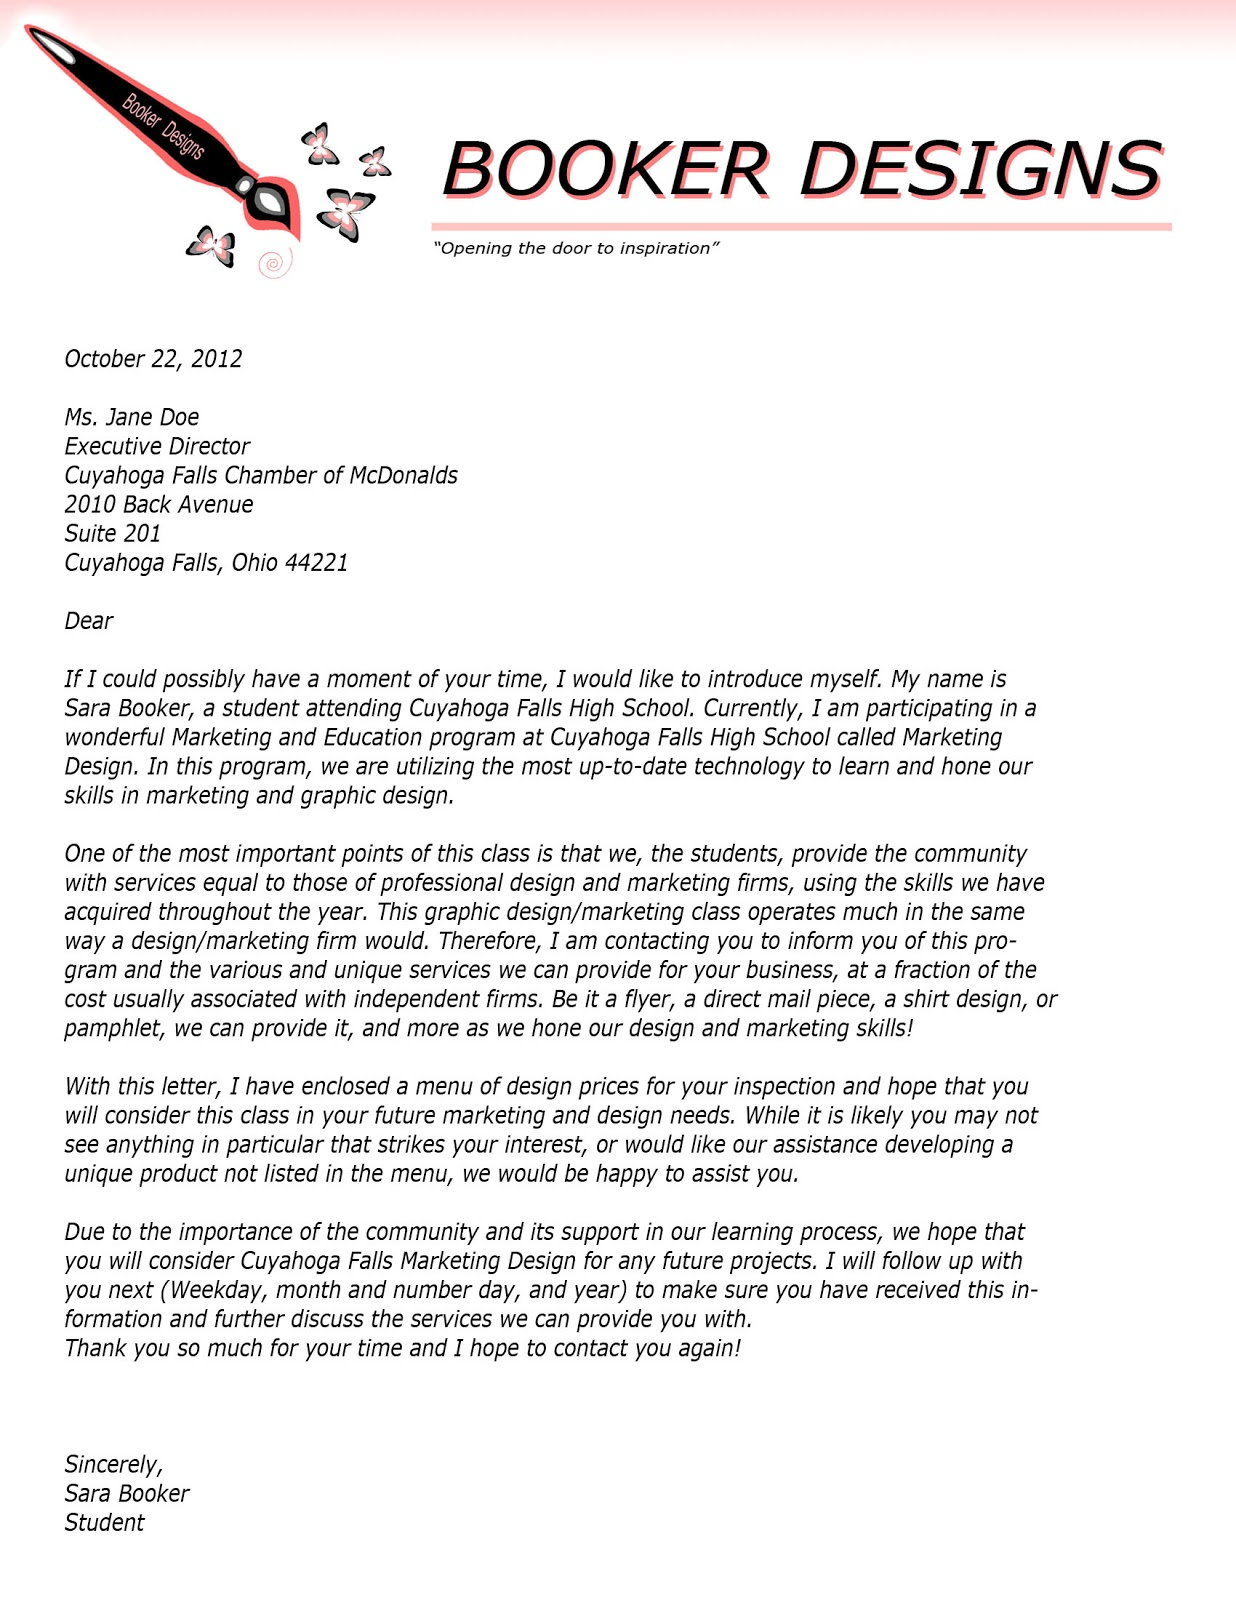 Adventures in Marketing and Design: Business Letter